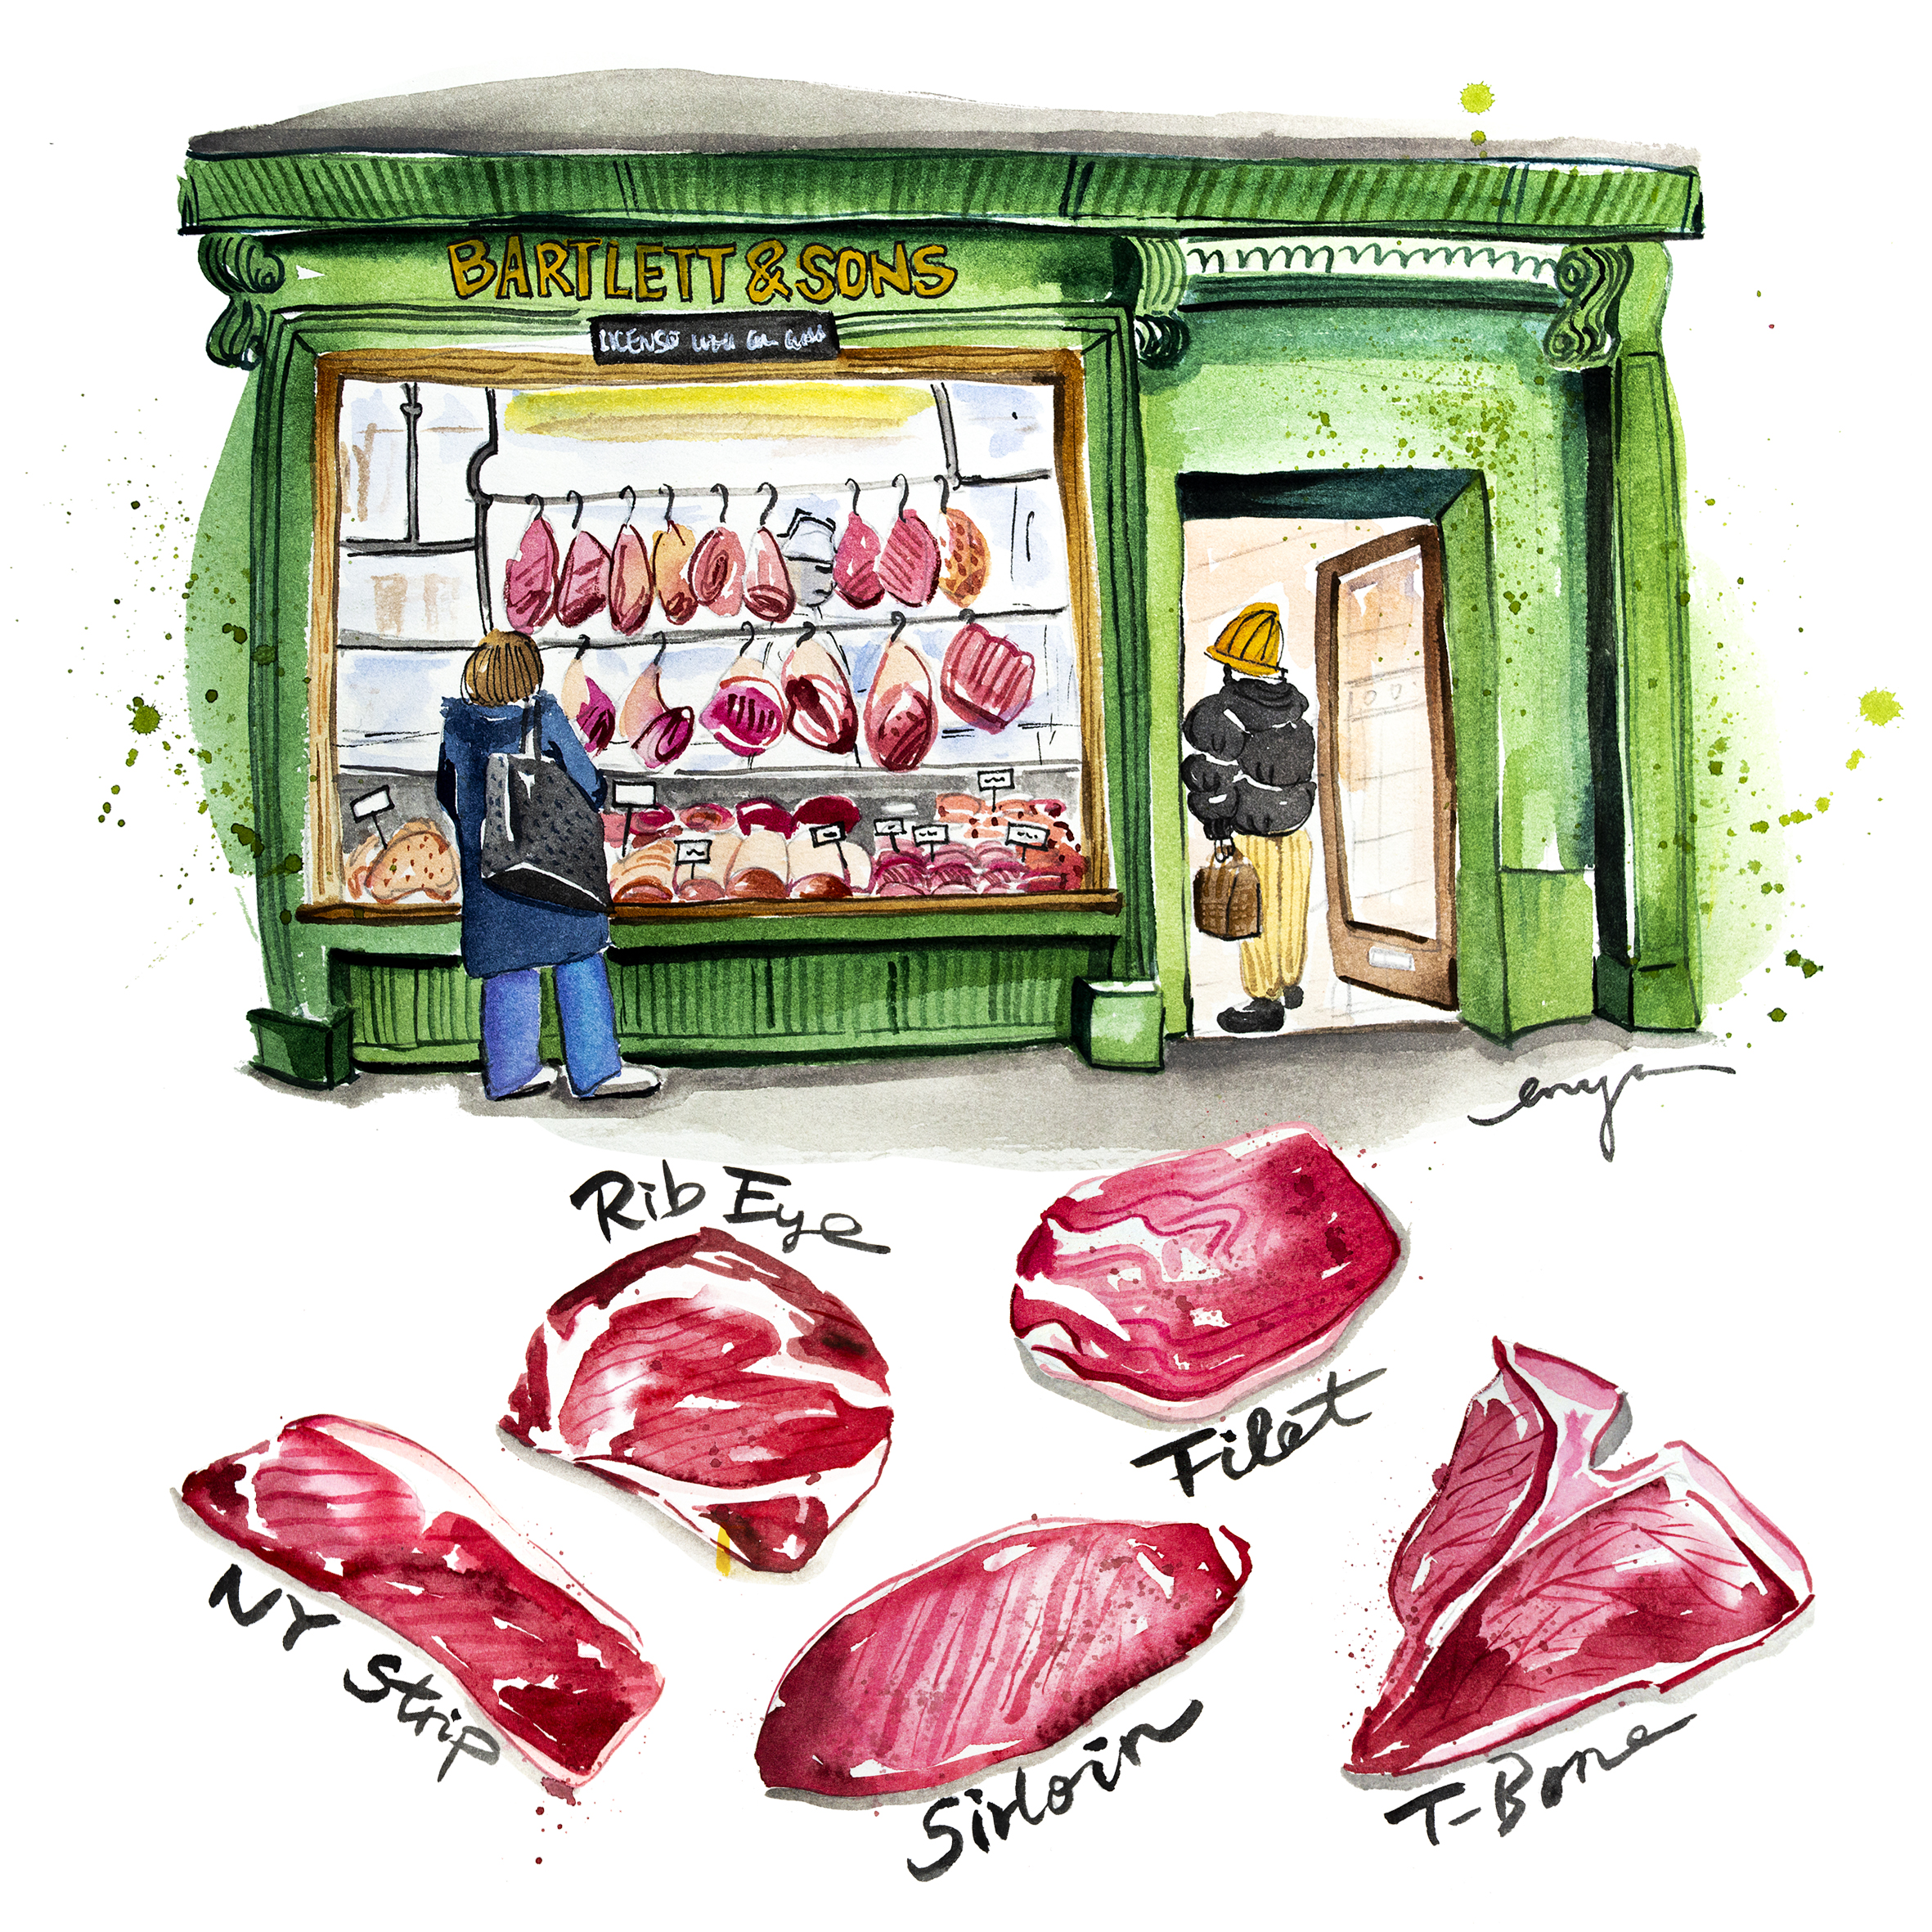 Local butcher in Bath